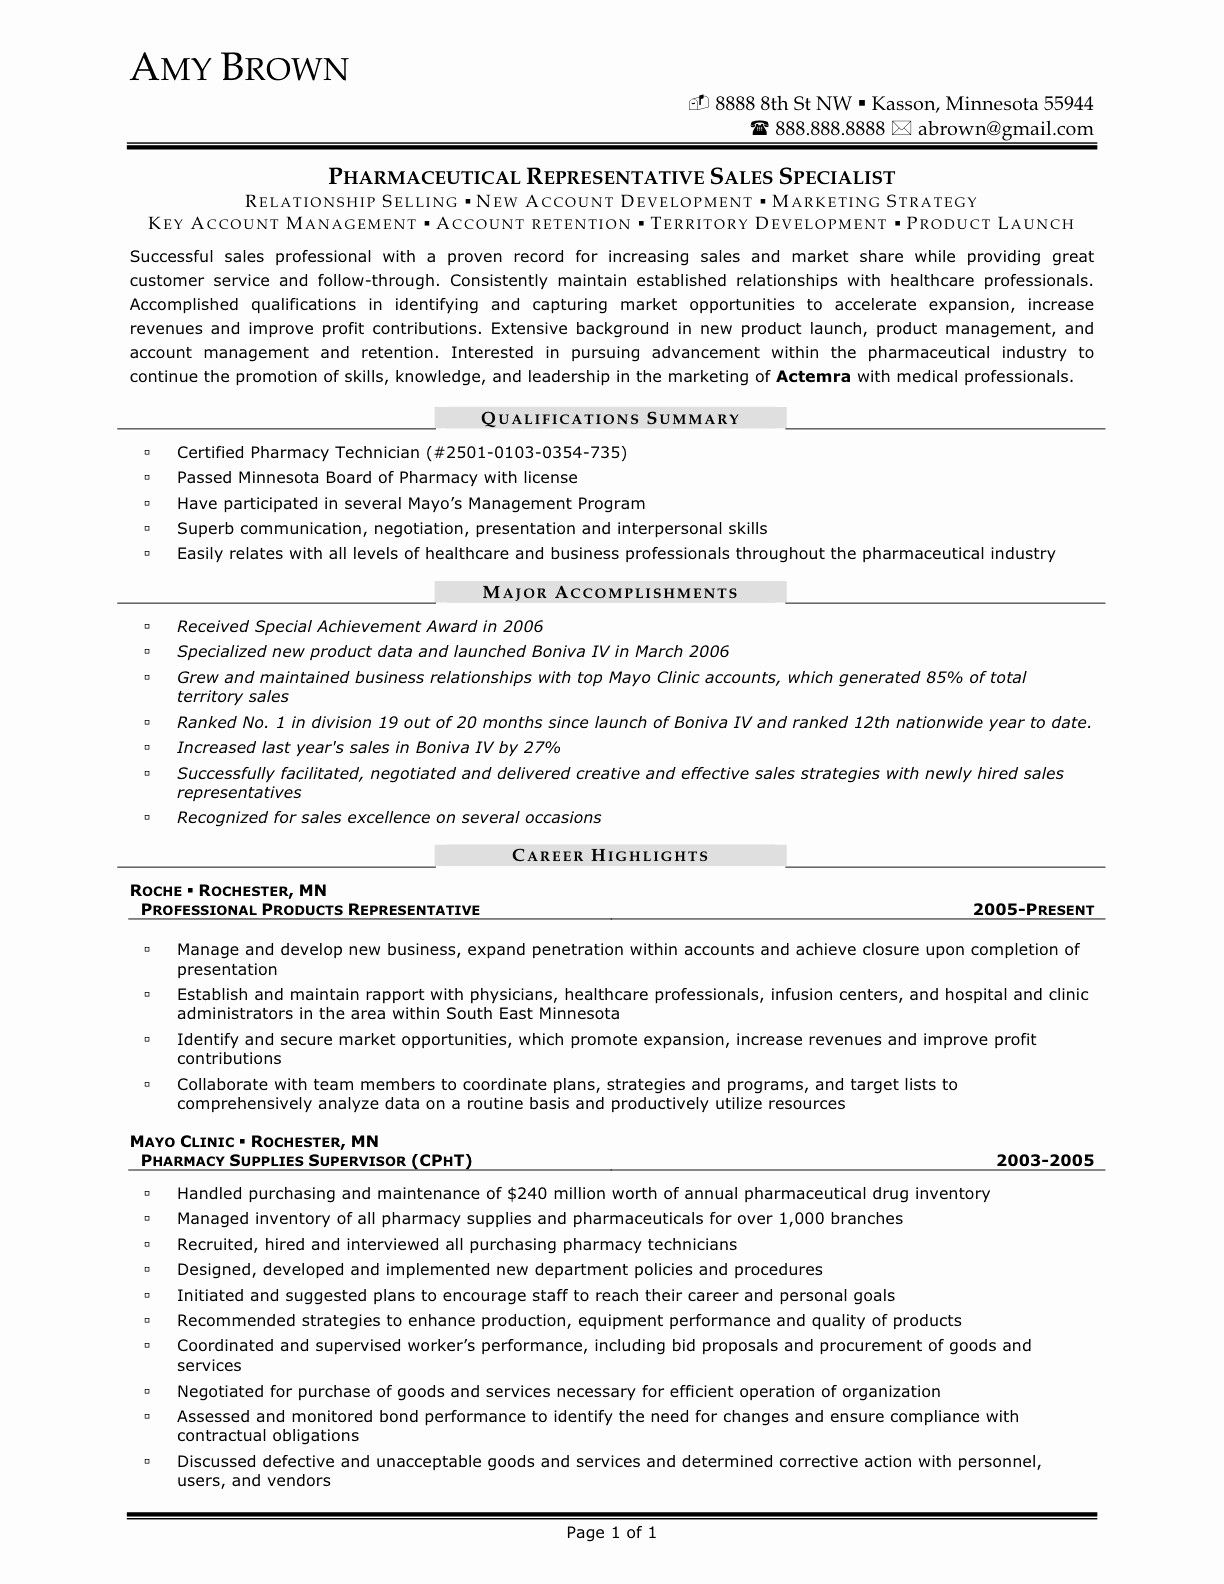 Lovely Sales Rep Resume Examples Best Best Sales Sales Resume Examples Pharmaceutical Sales Pharmaceutical Sales Resume